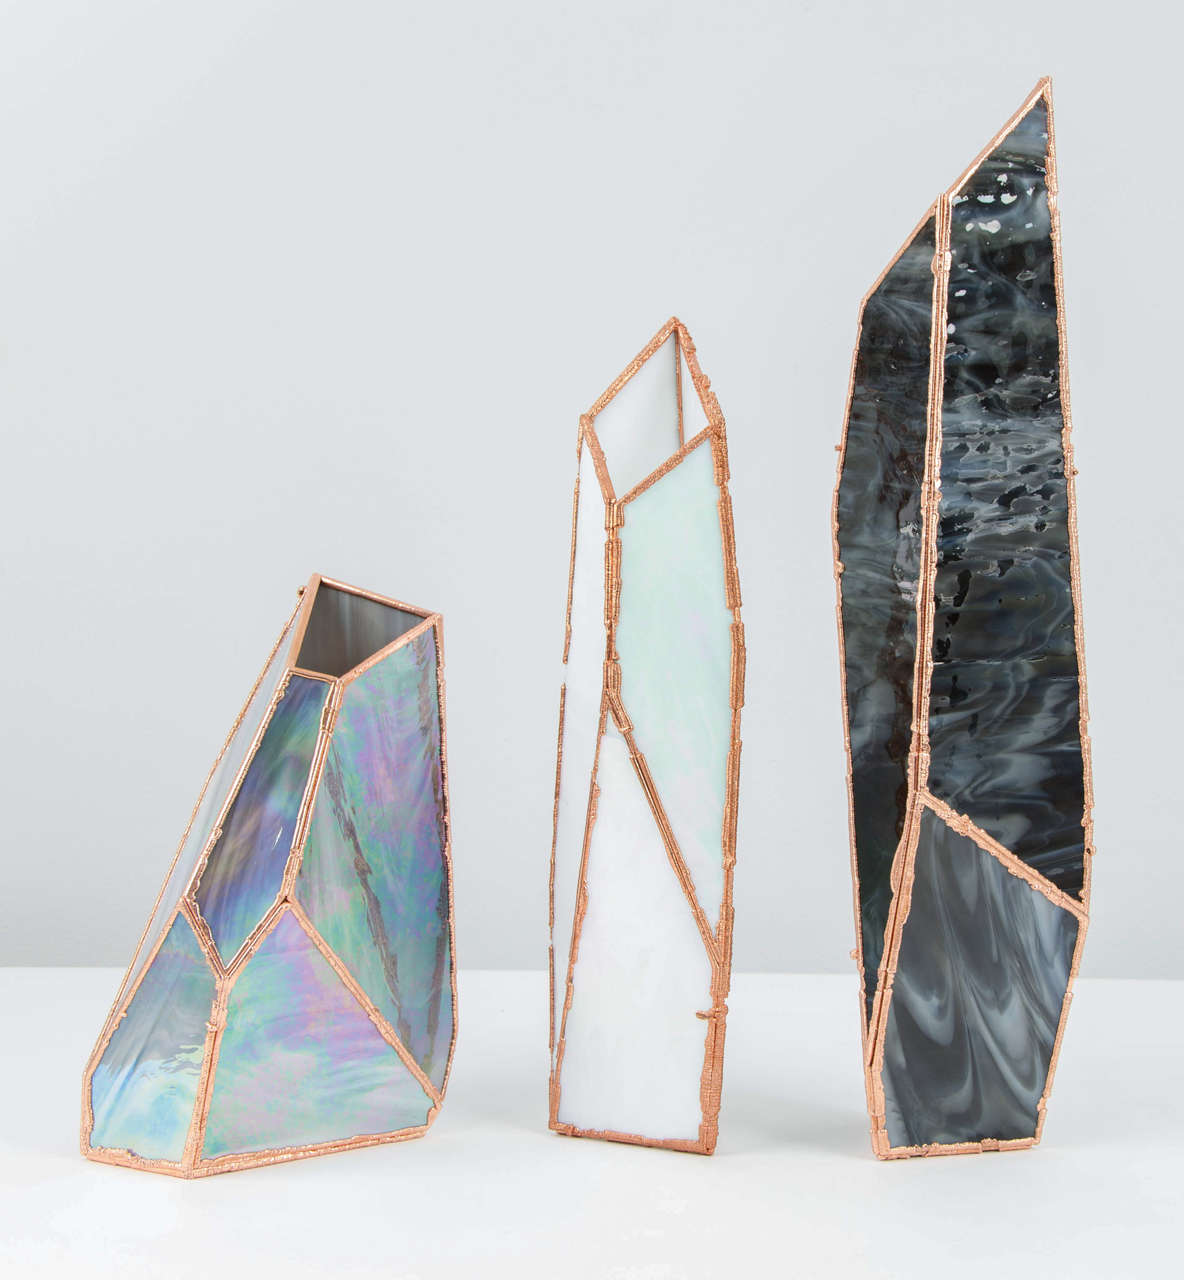 The price and dimensions shown are for the largest size.  OverNight vases, are a collection of unique glass and copper mixed colored vases by Odd Matter, a partnership of Dutch native, Els Woldhek and Bulgarian, Georgi Manassiev.  Taking